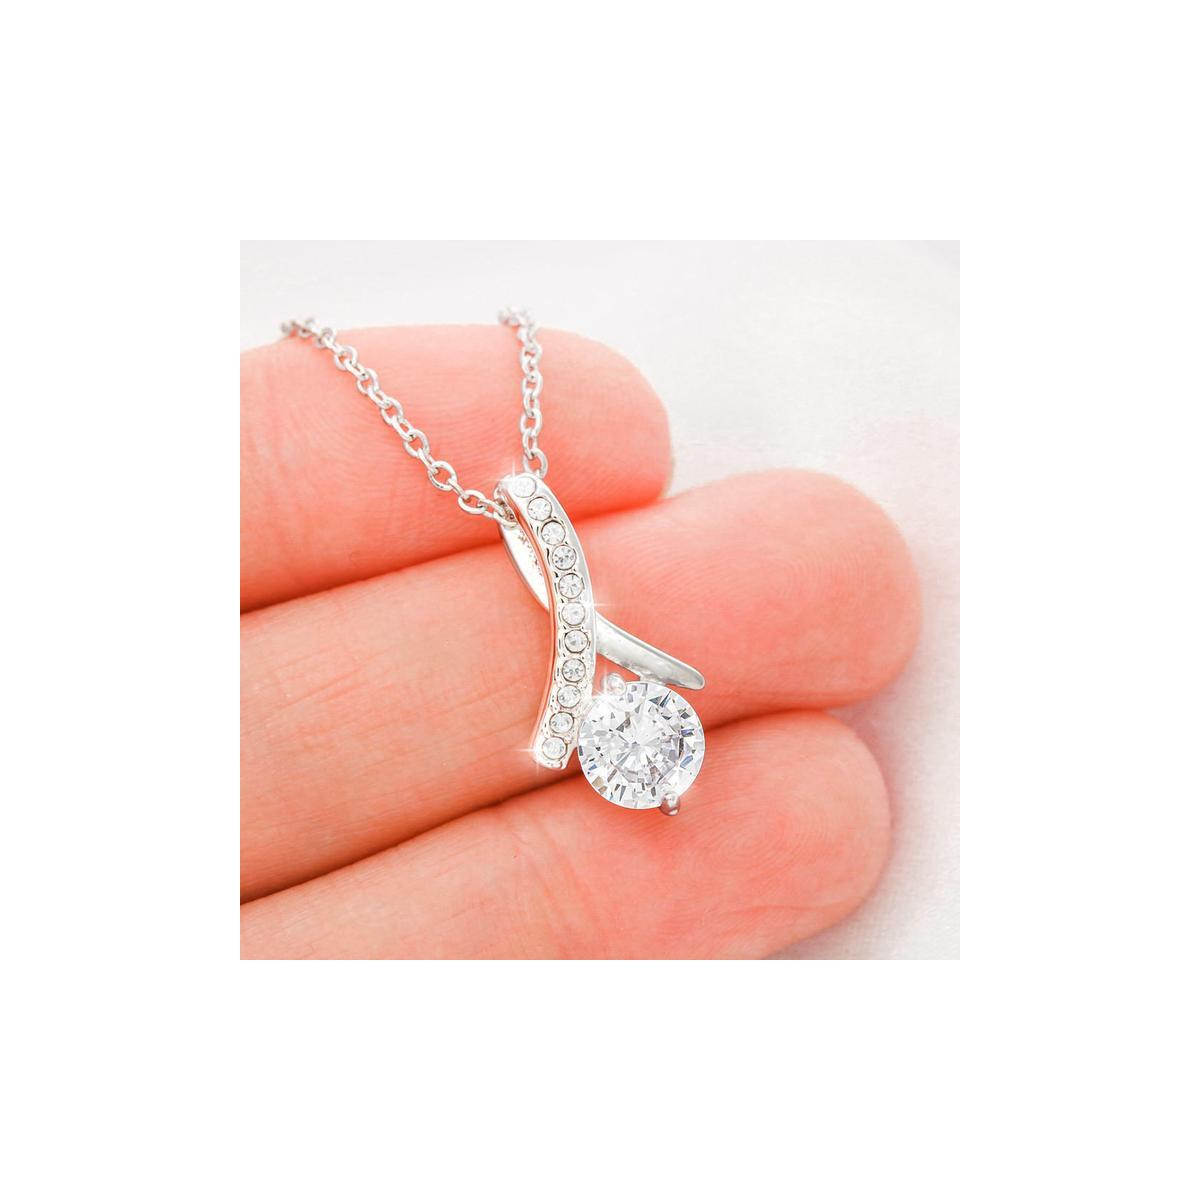 I Love You, Allora Necklace With A Message Card Gift, FROM USA